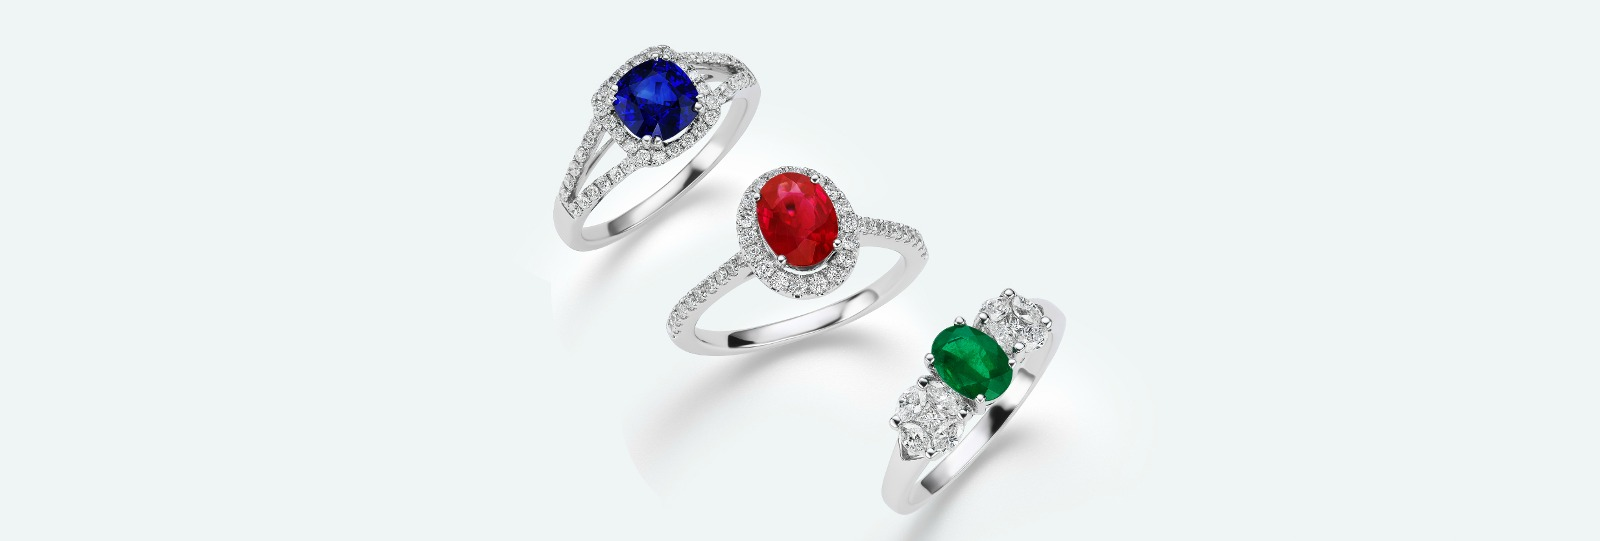 rings jewellery luxury coloured stone engagement trans